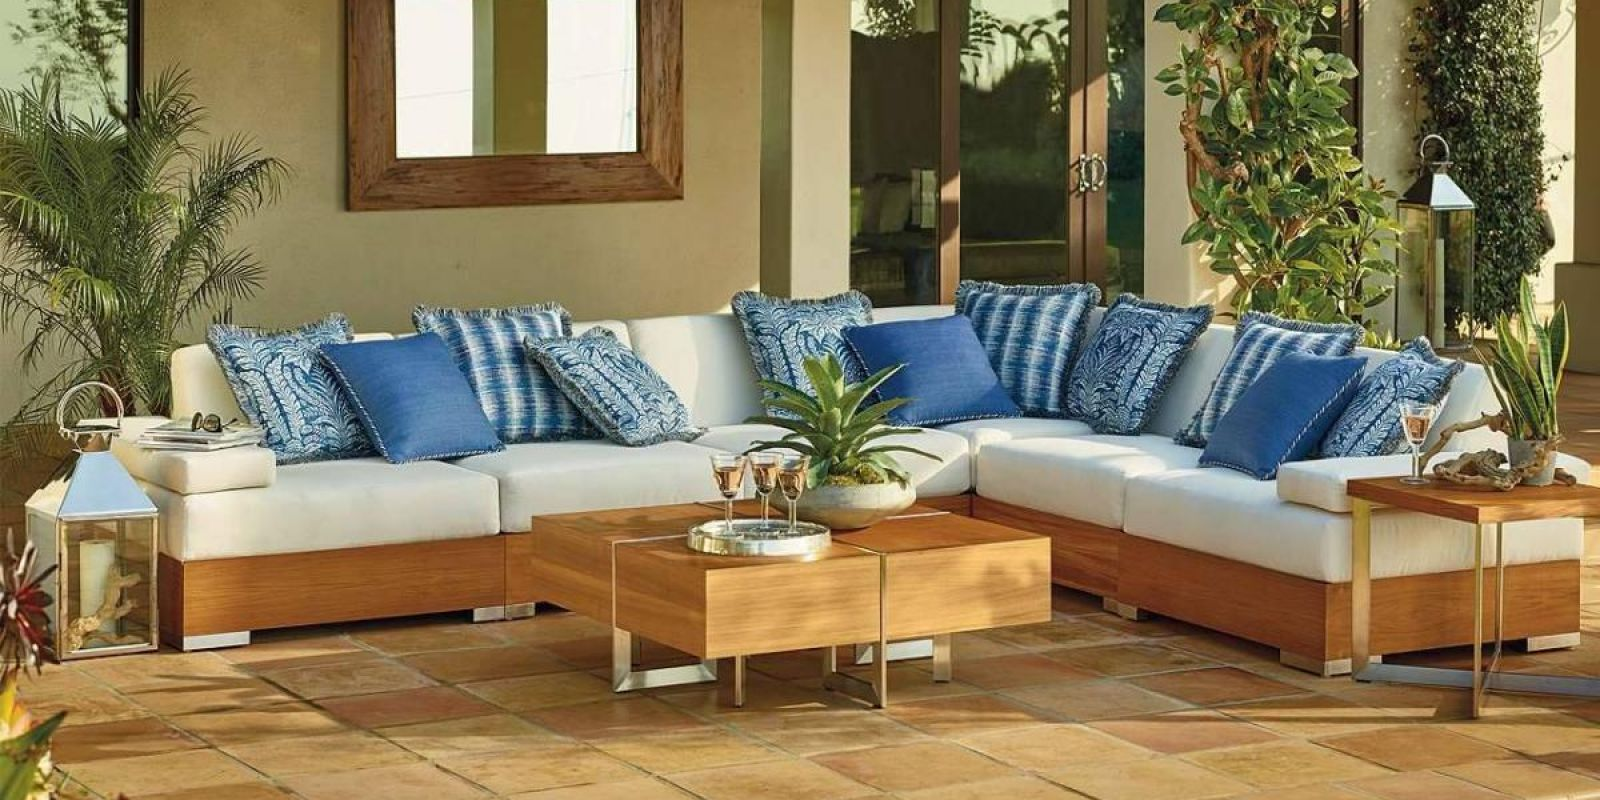 Outdoor Furniture | American Casual Living on Porch & Patio Casual Living id=38512